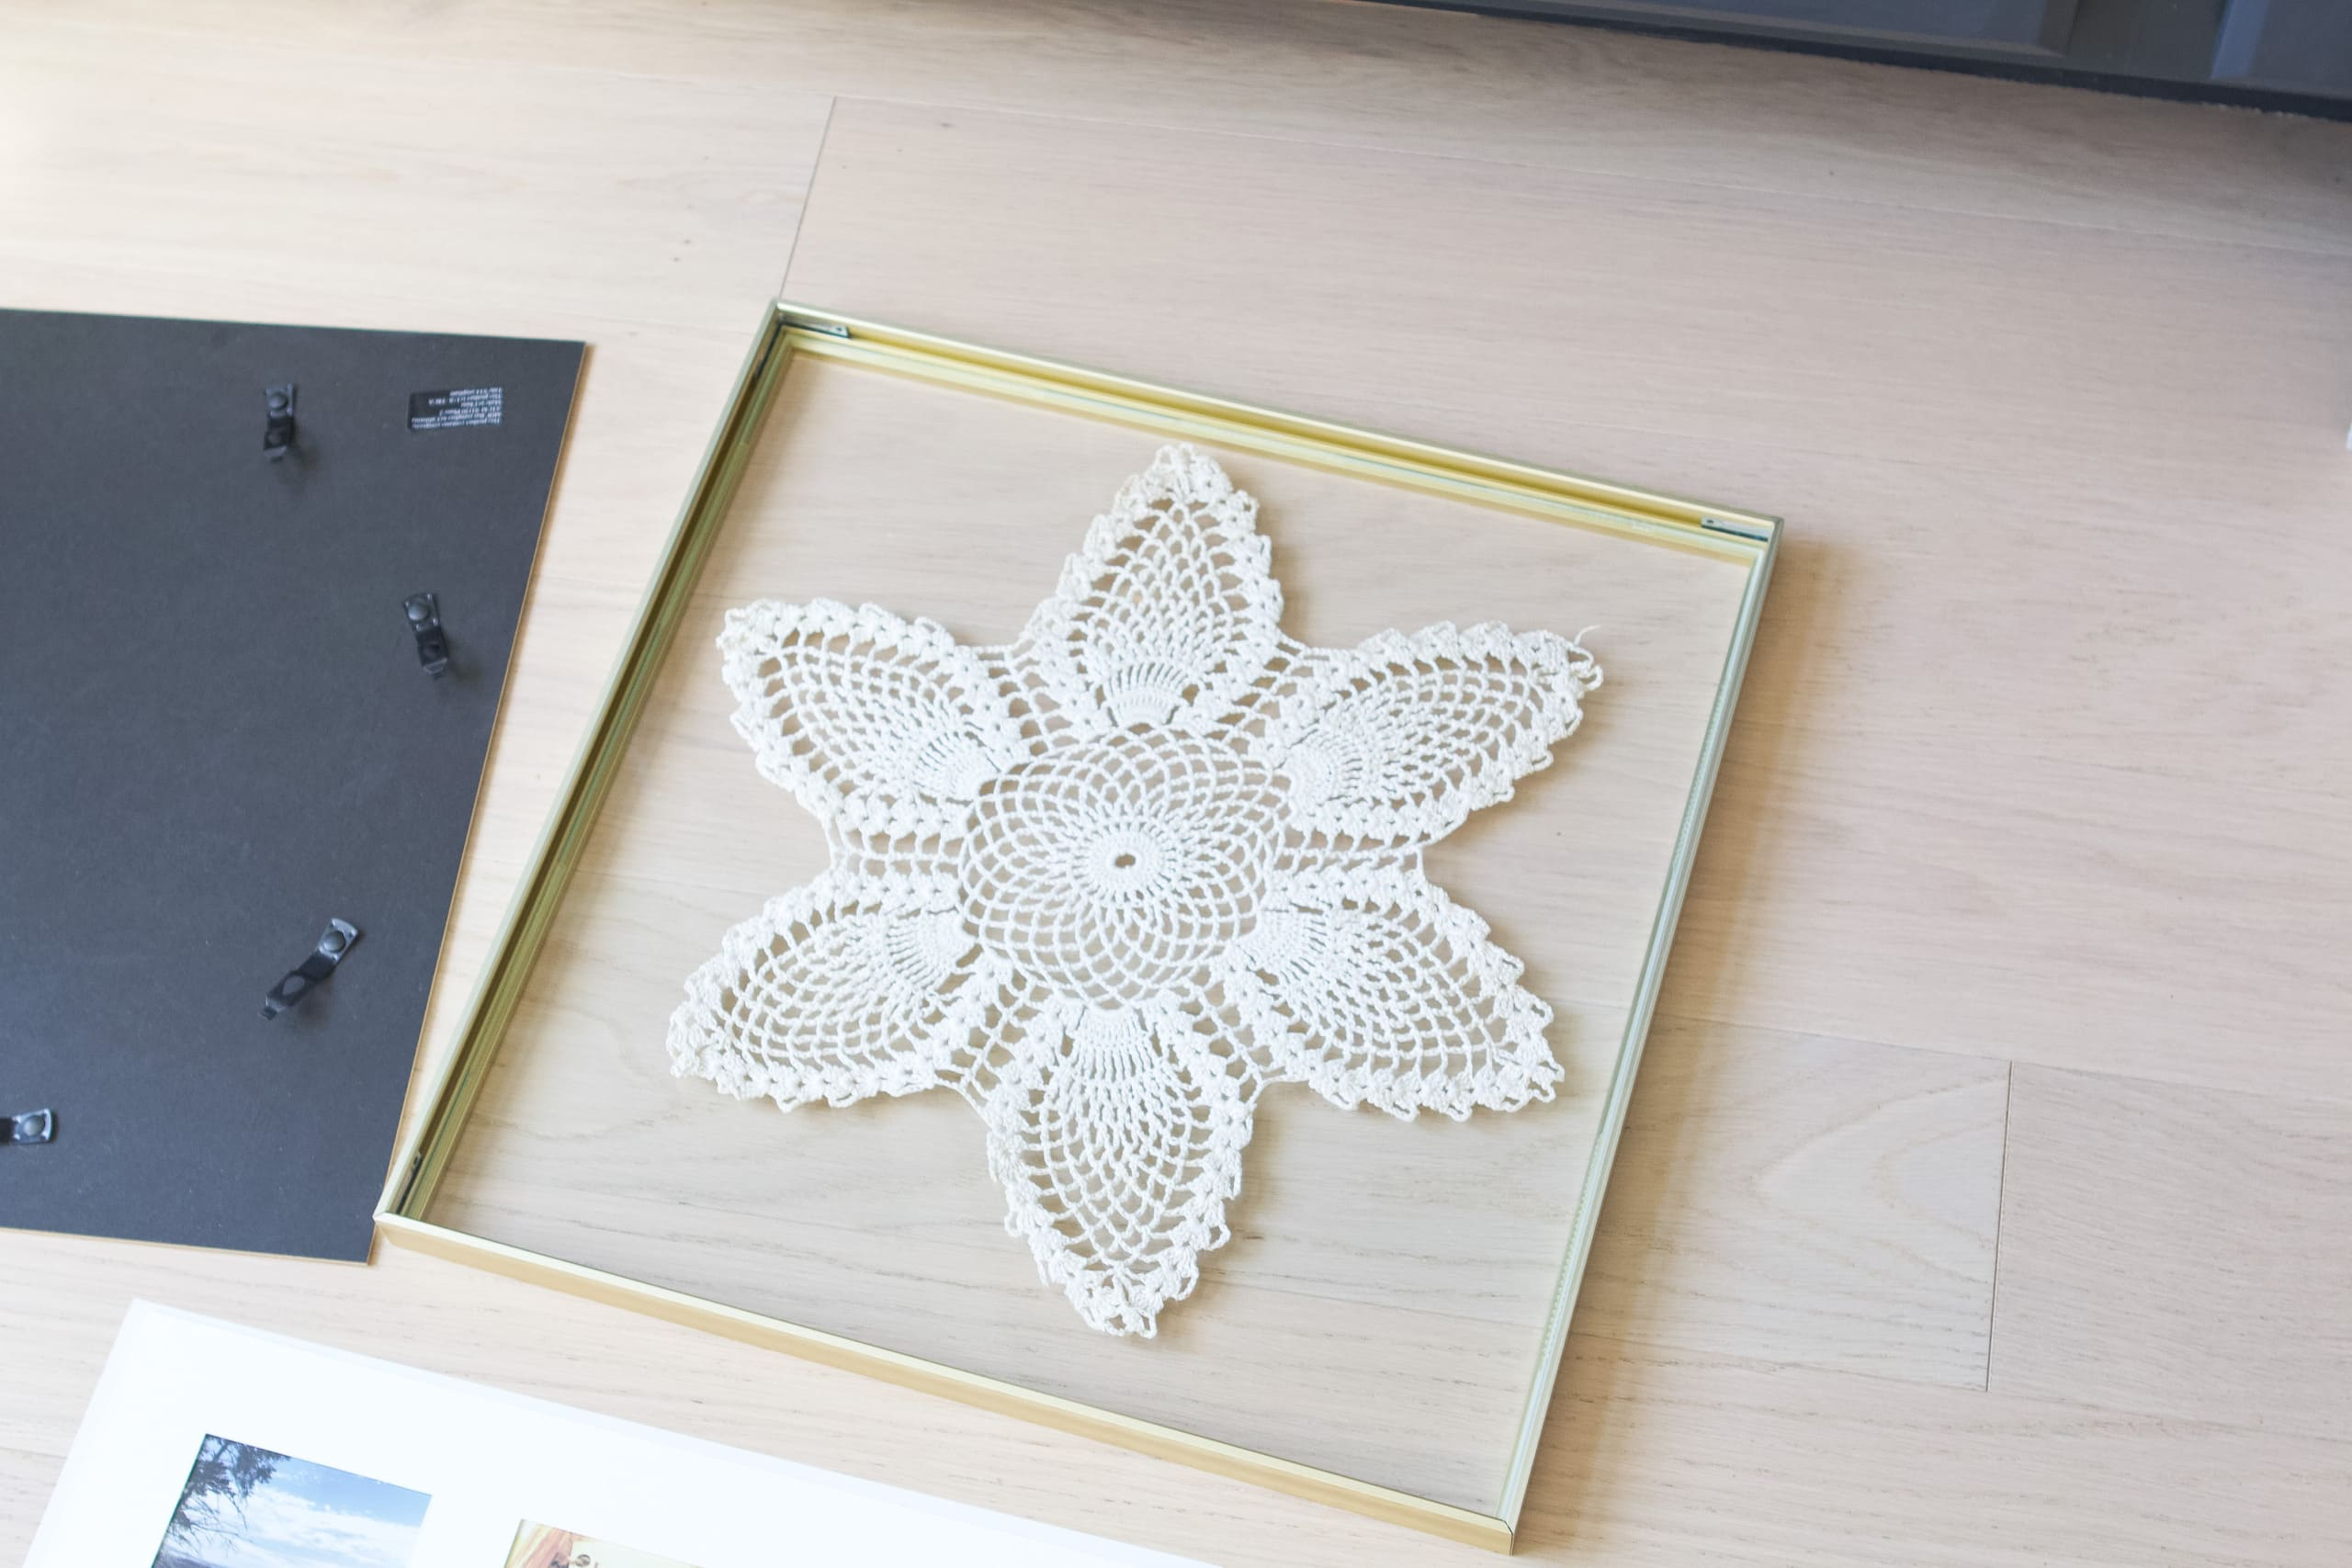 My clean doily